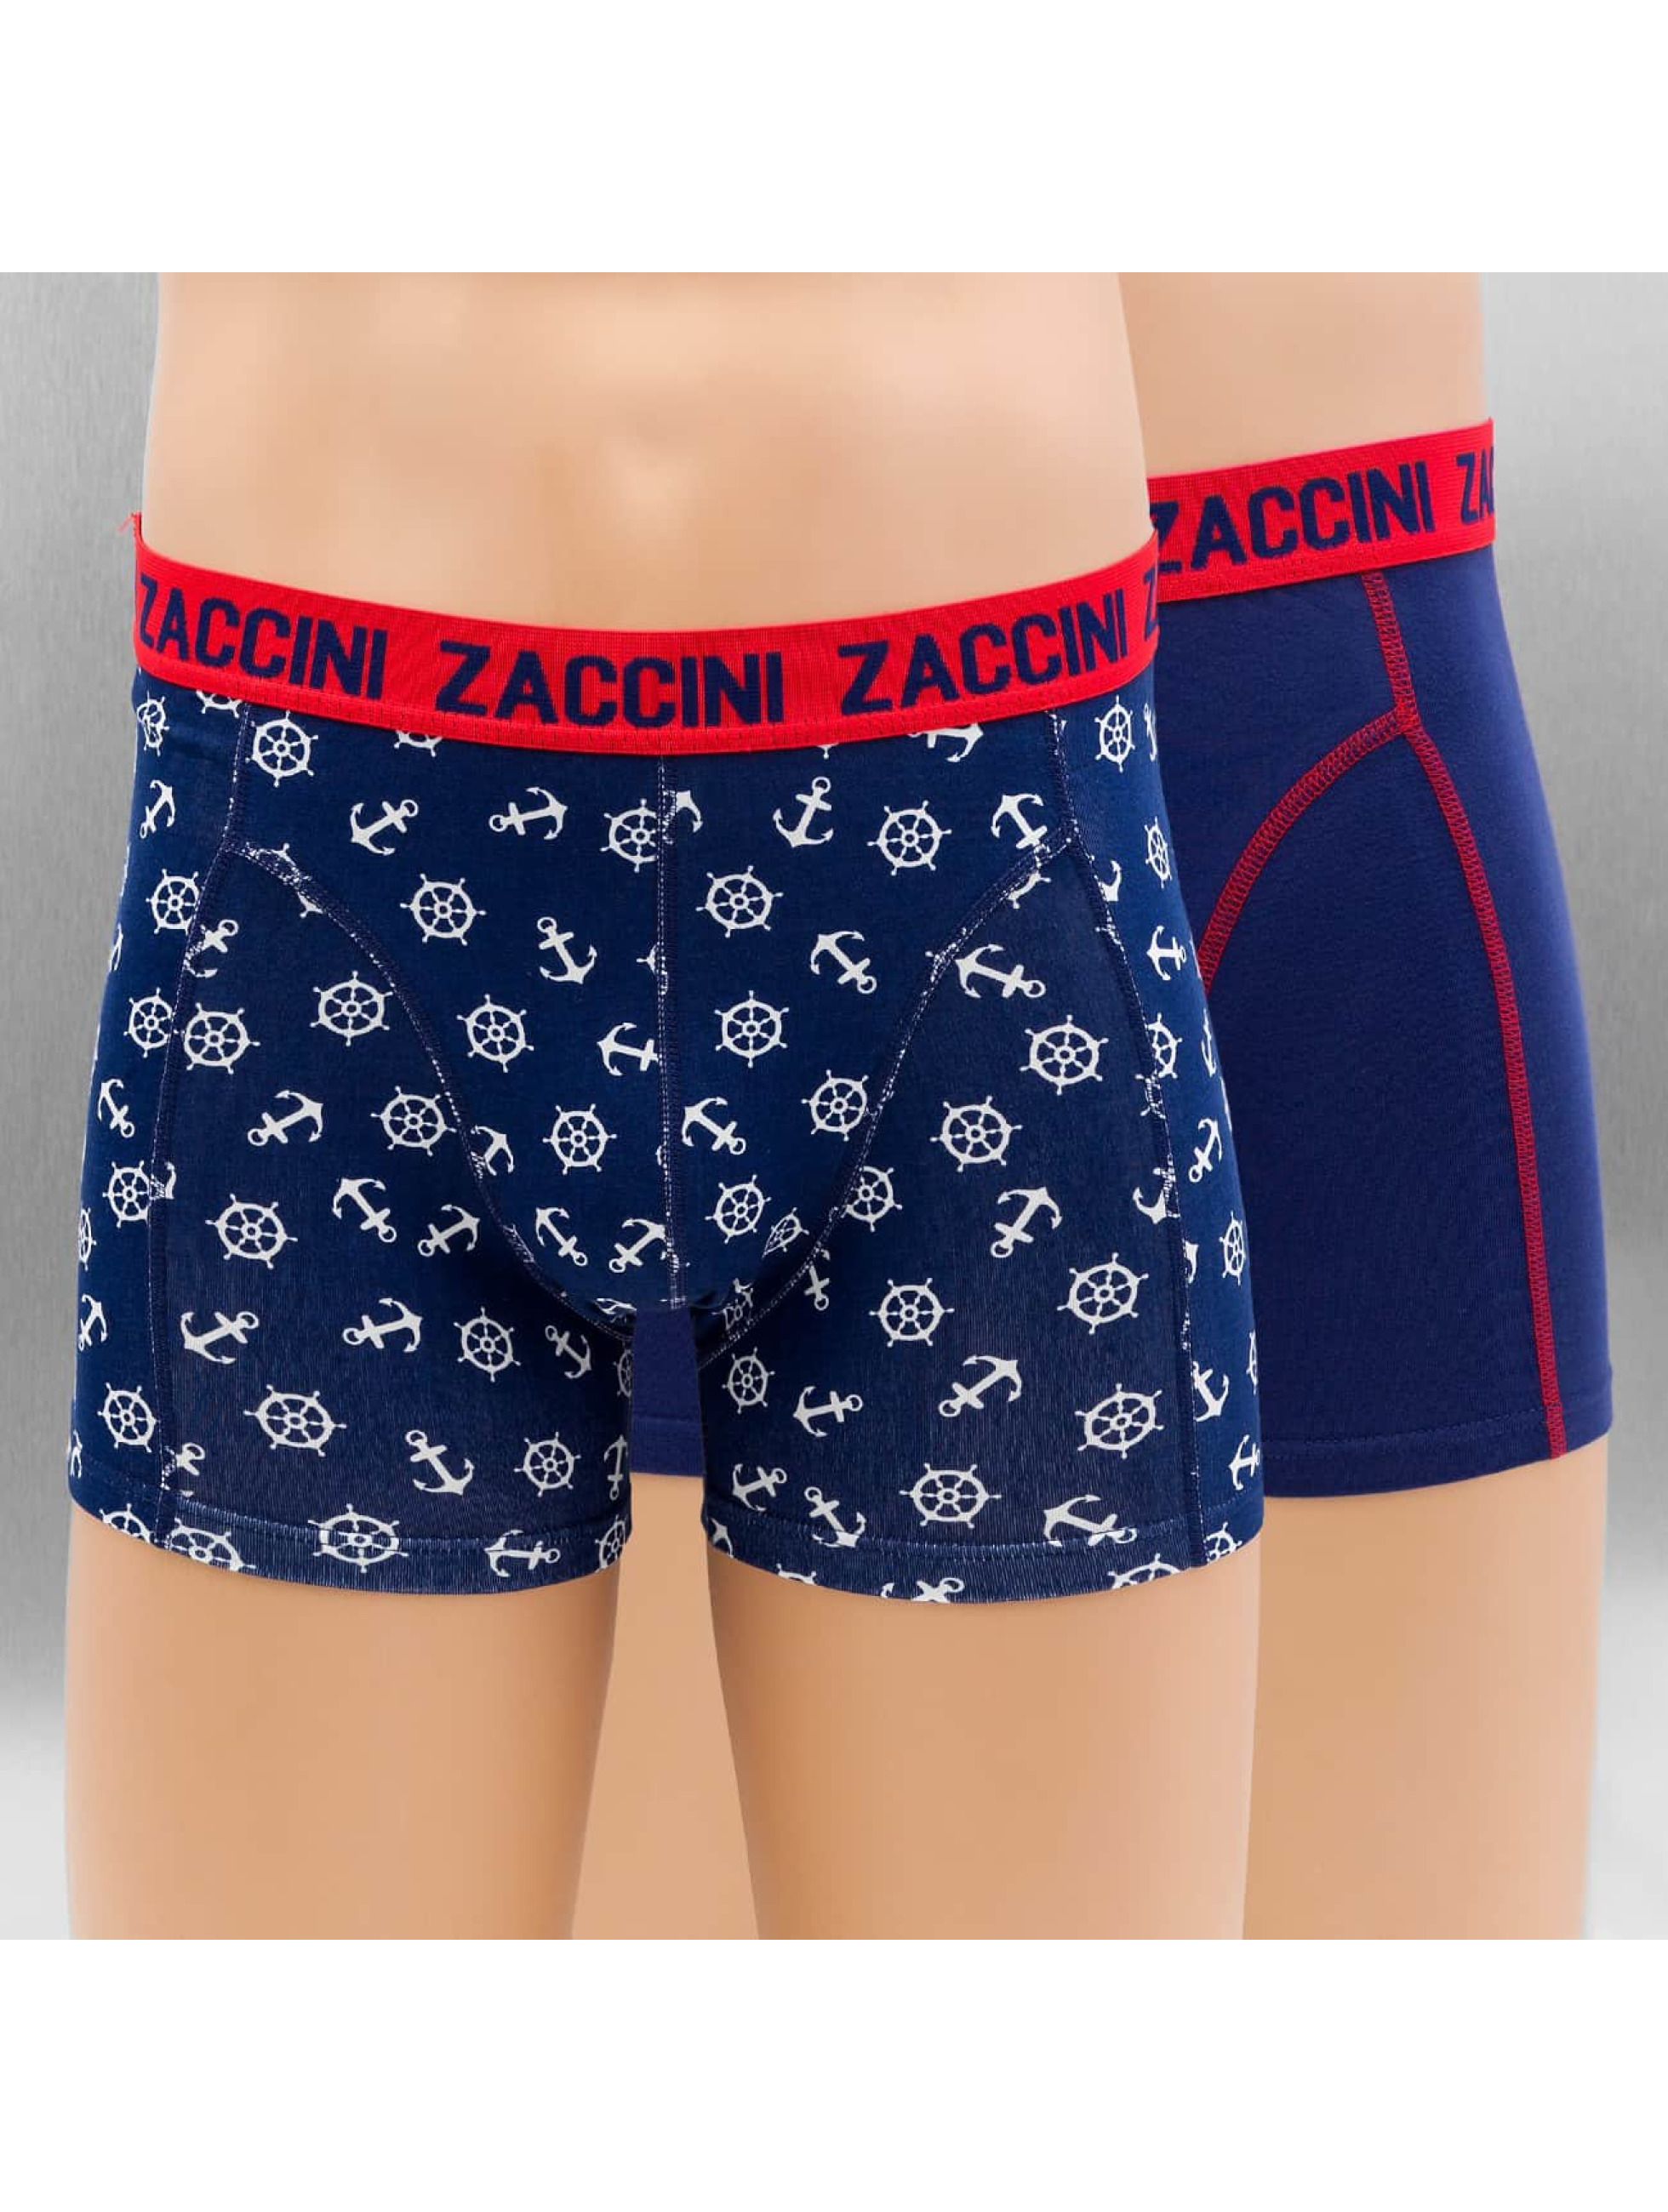 Zaccini Boxerky Nautical 2-Pack modrá